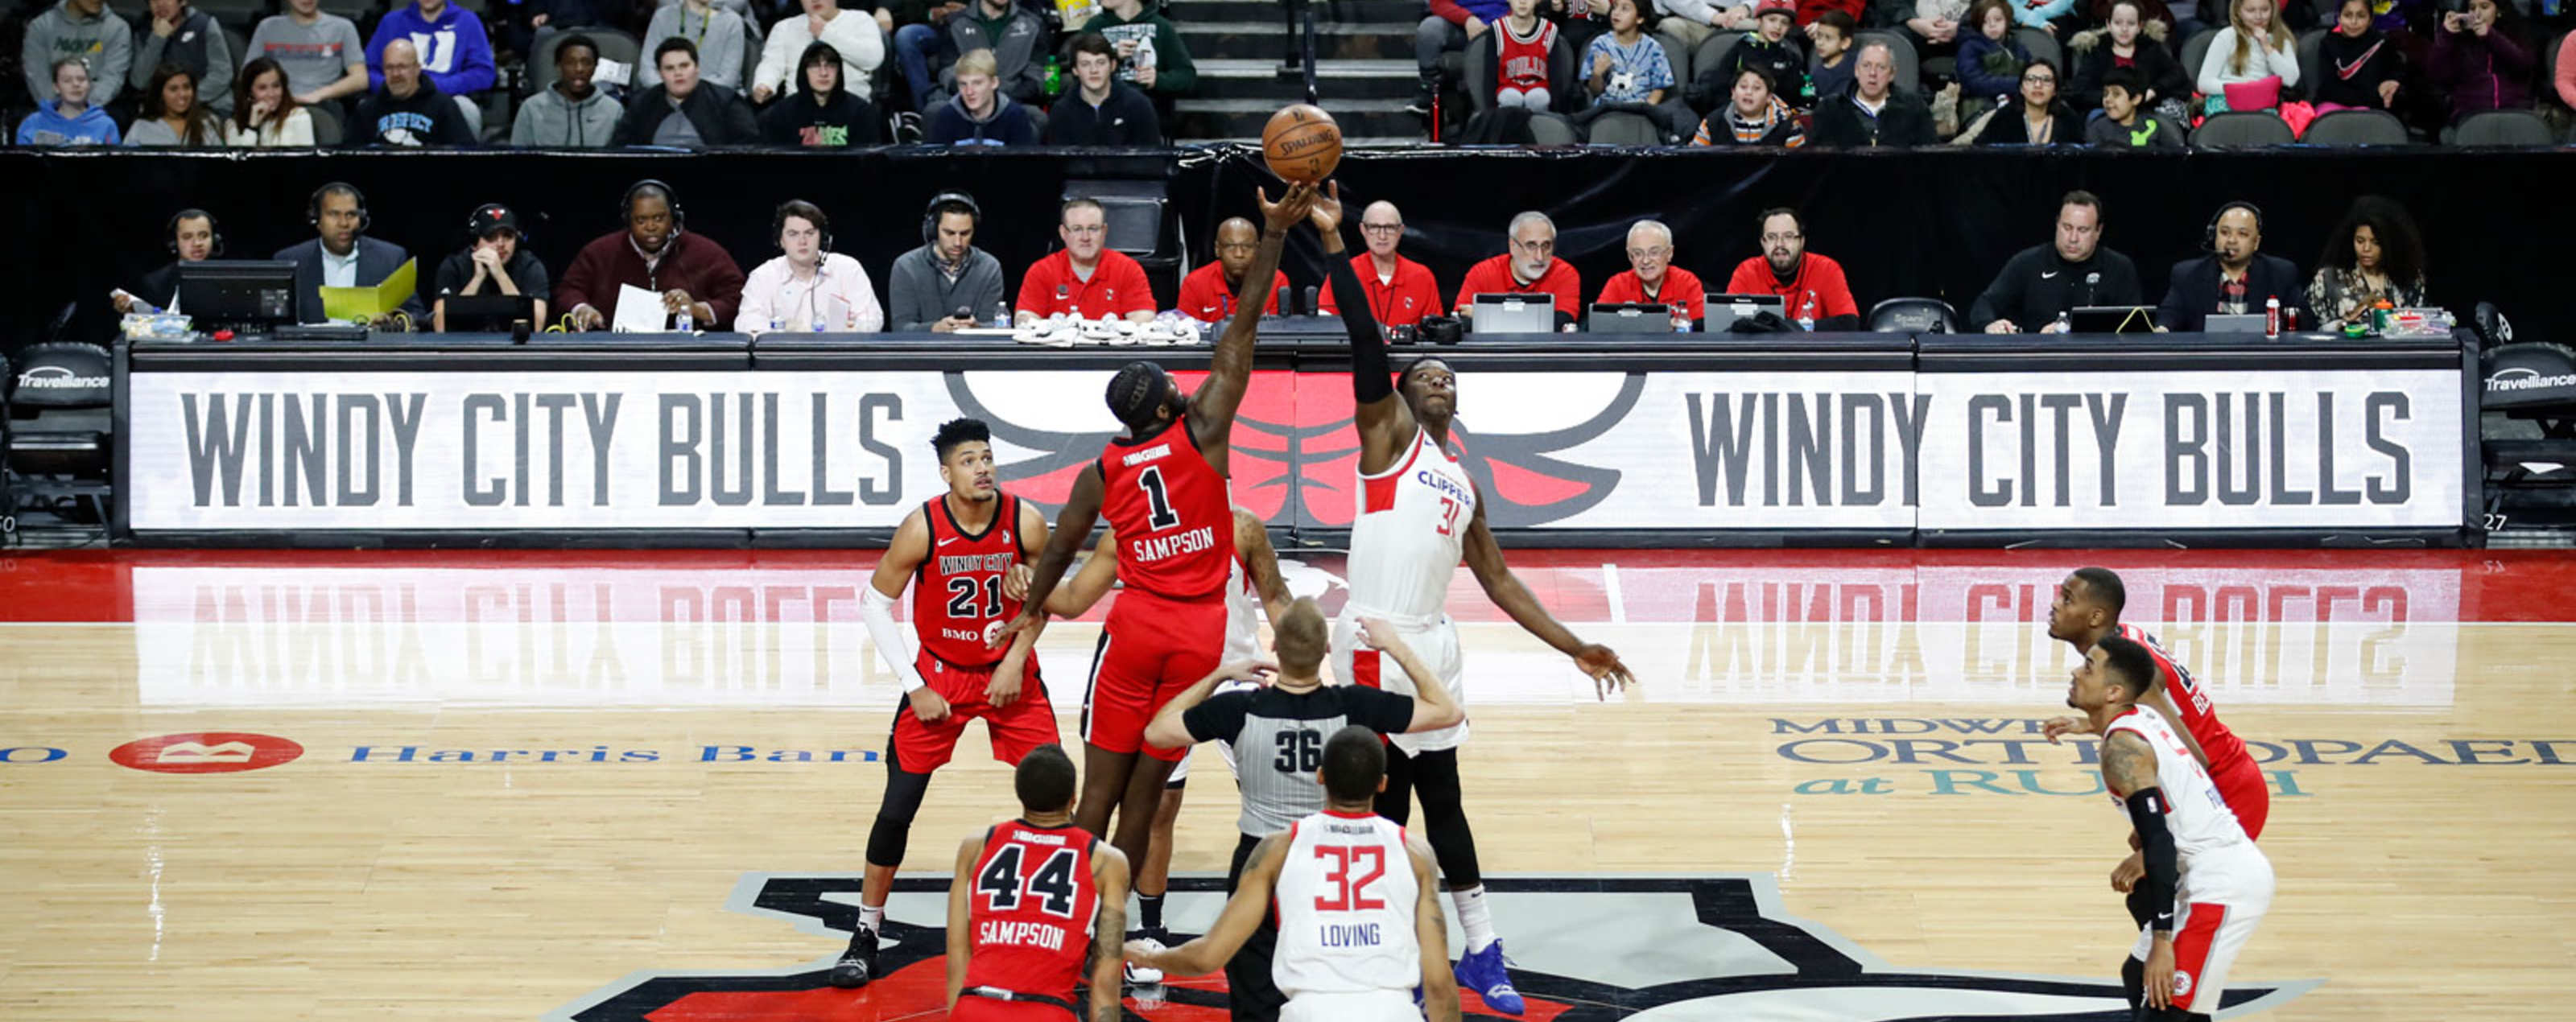 Windy City Bulls tip off the ball against the Agua Caliente Clippers